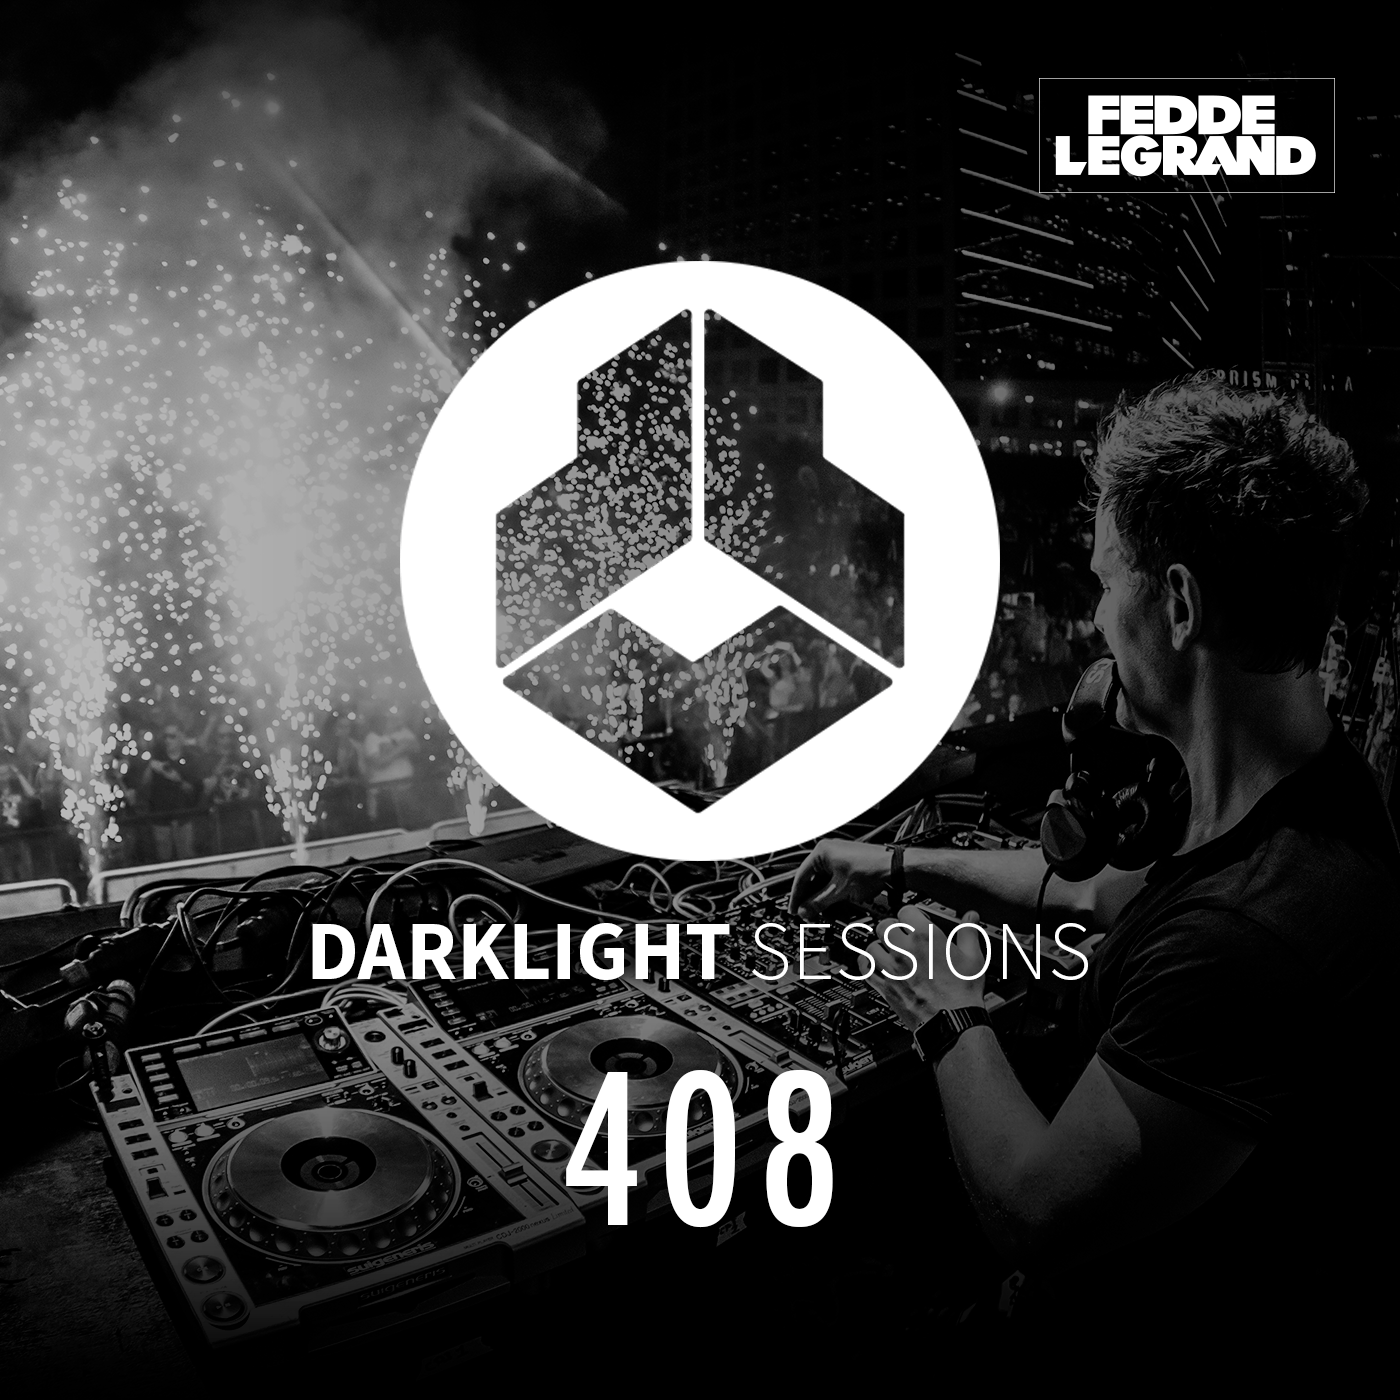 Darklight Sessions 408